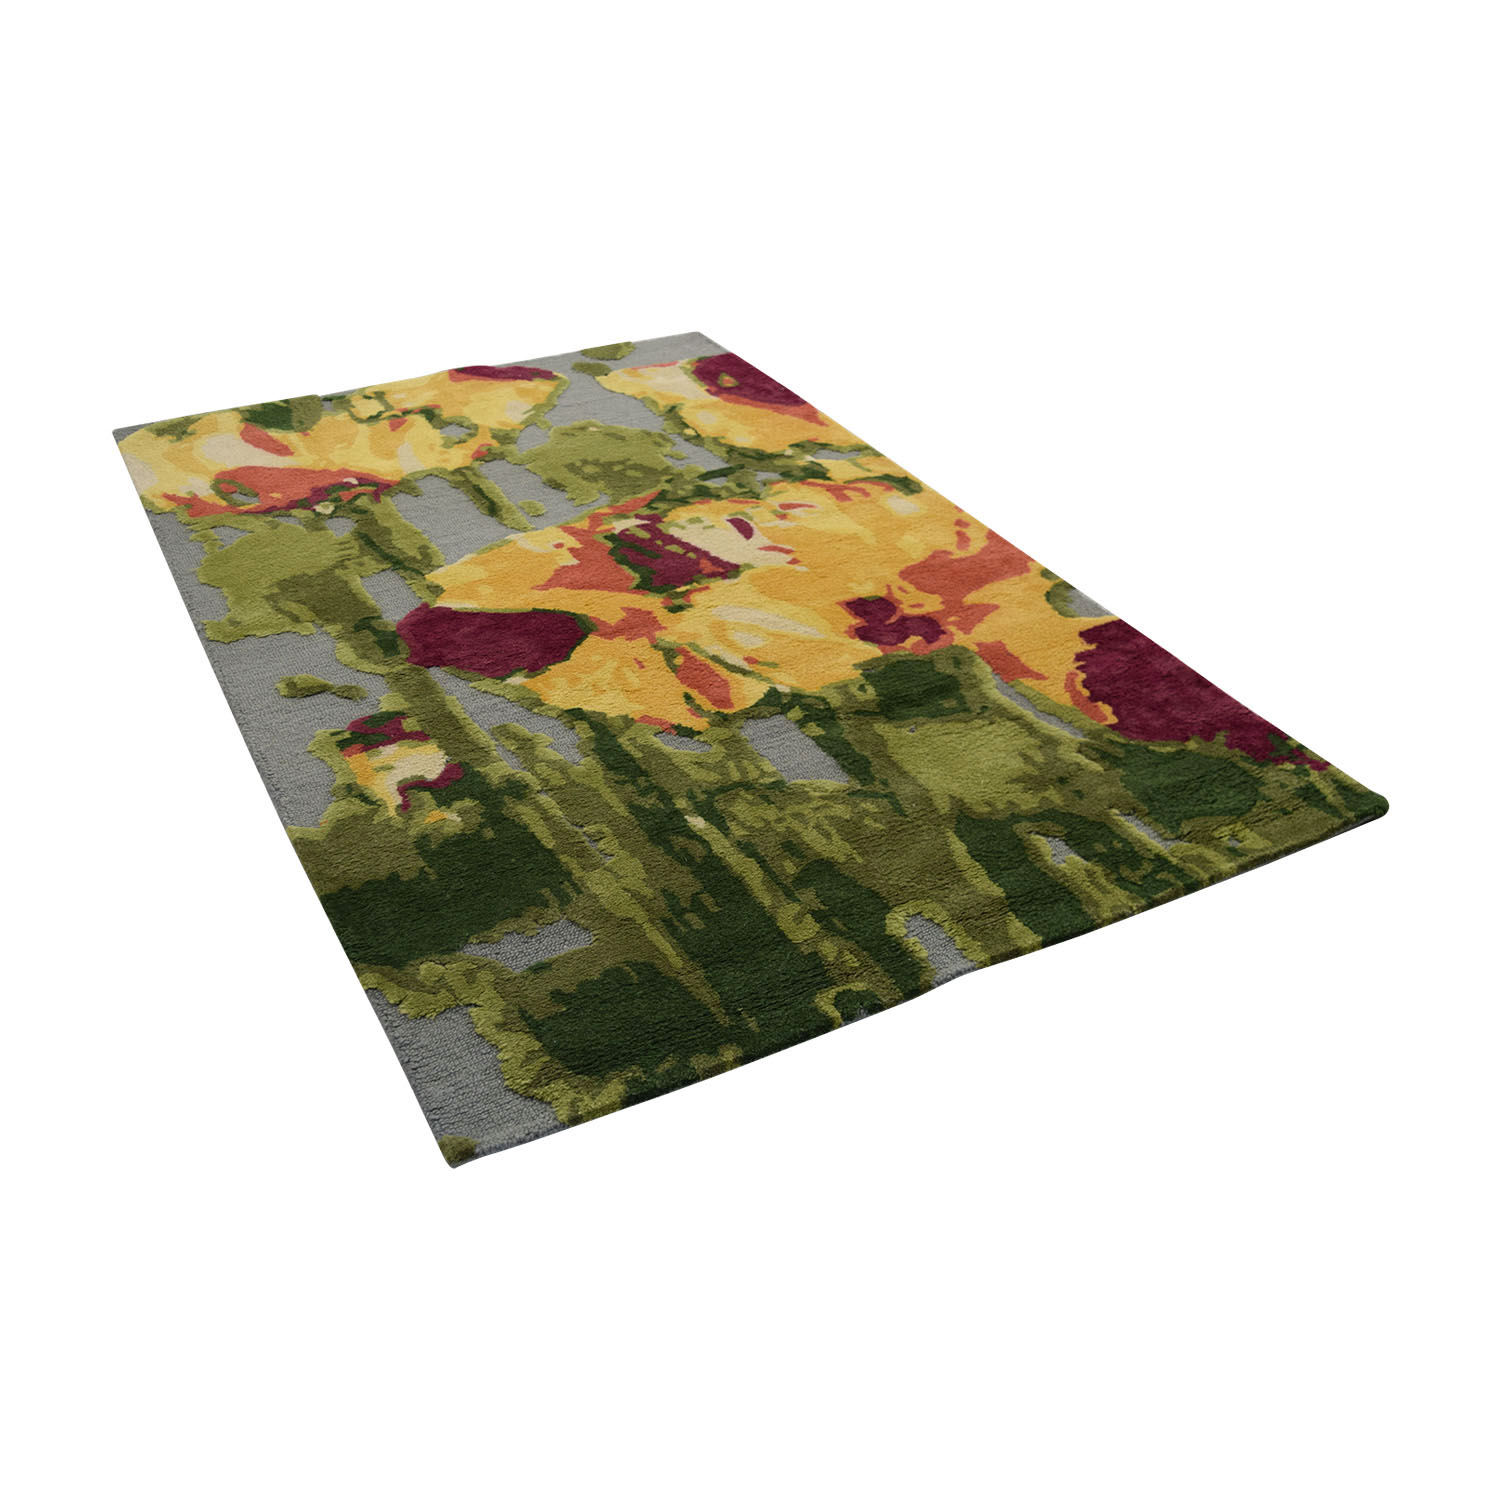 shop Obeetee 5 X 8 Orange Green Pink Yellow and Grey Wool Rug with High and Low Pile Obeetee